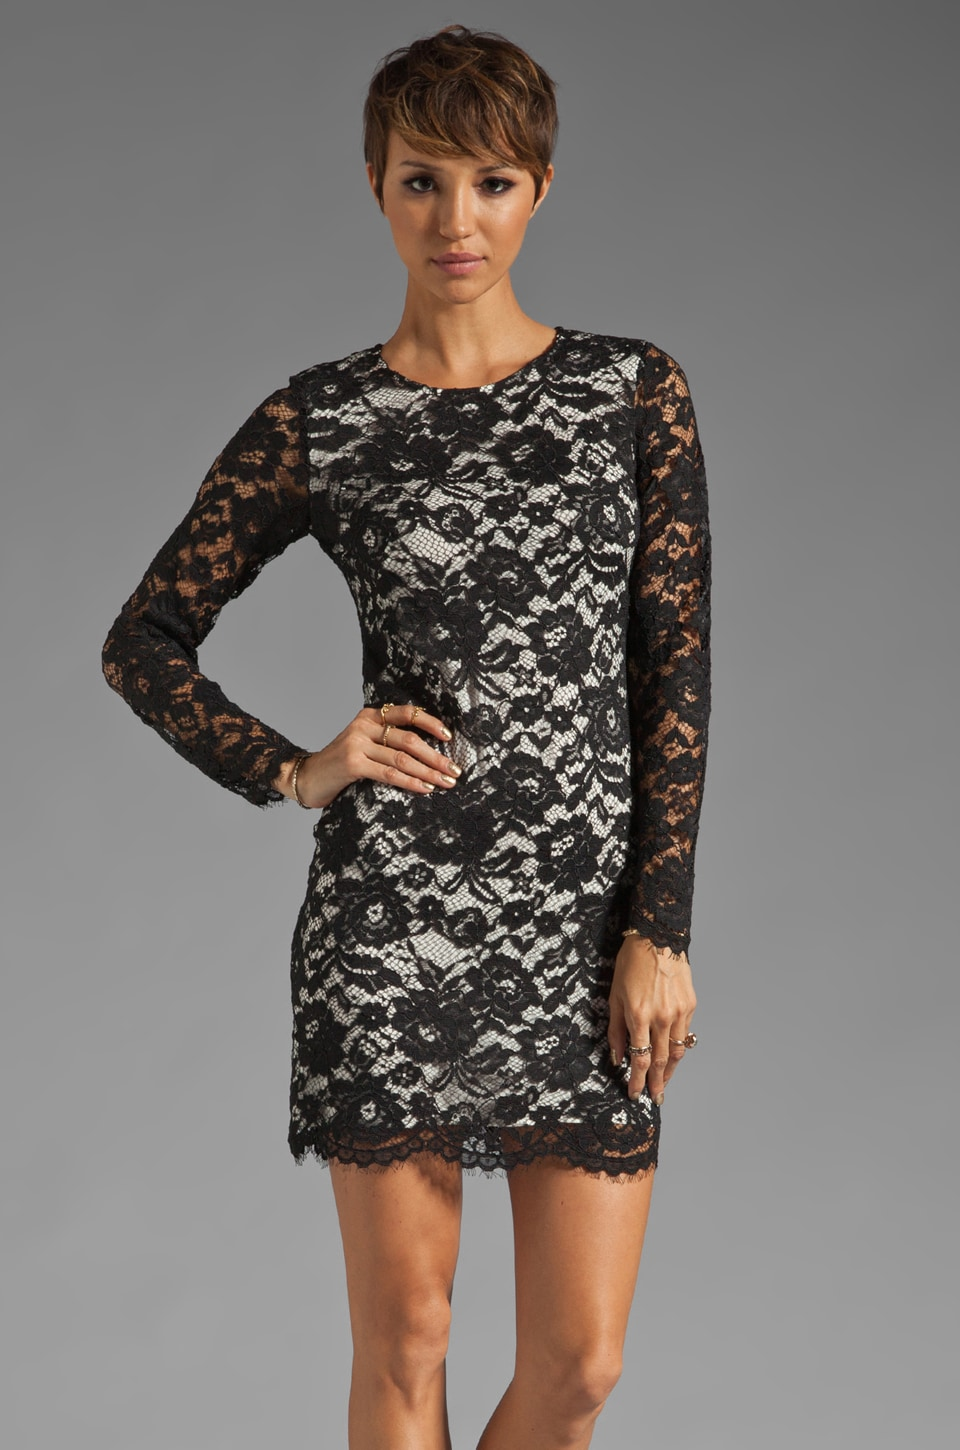 Theory Galician Marique Floral Lace Dress in Black